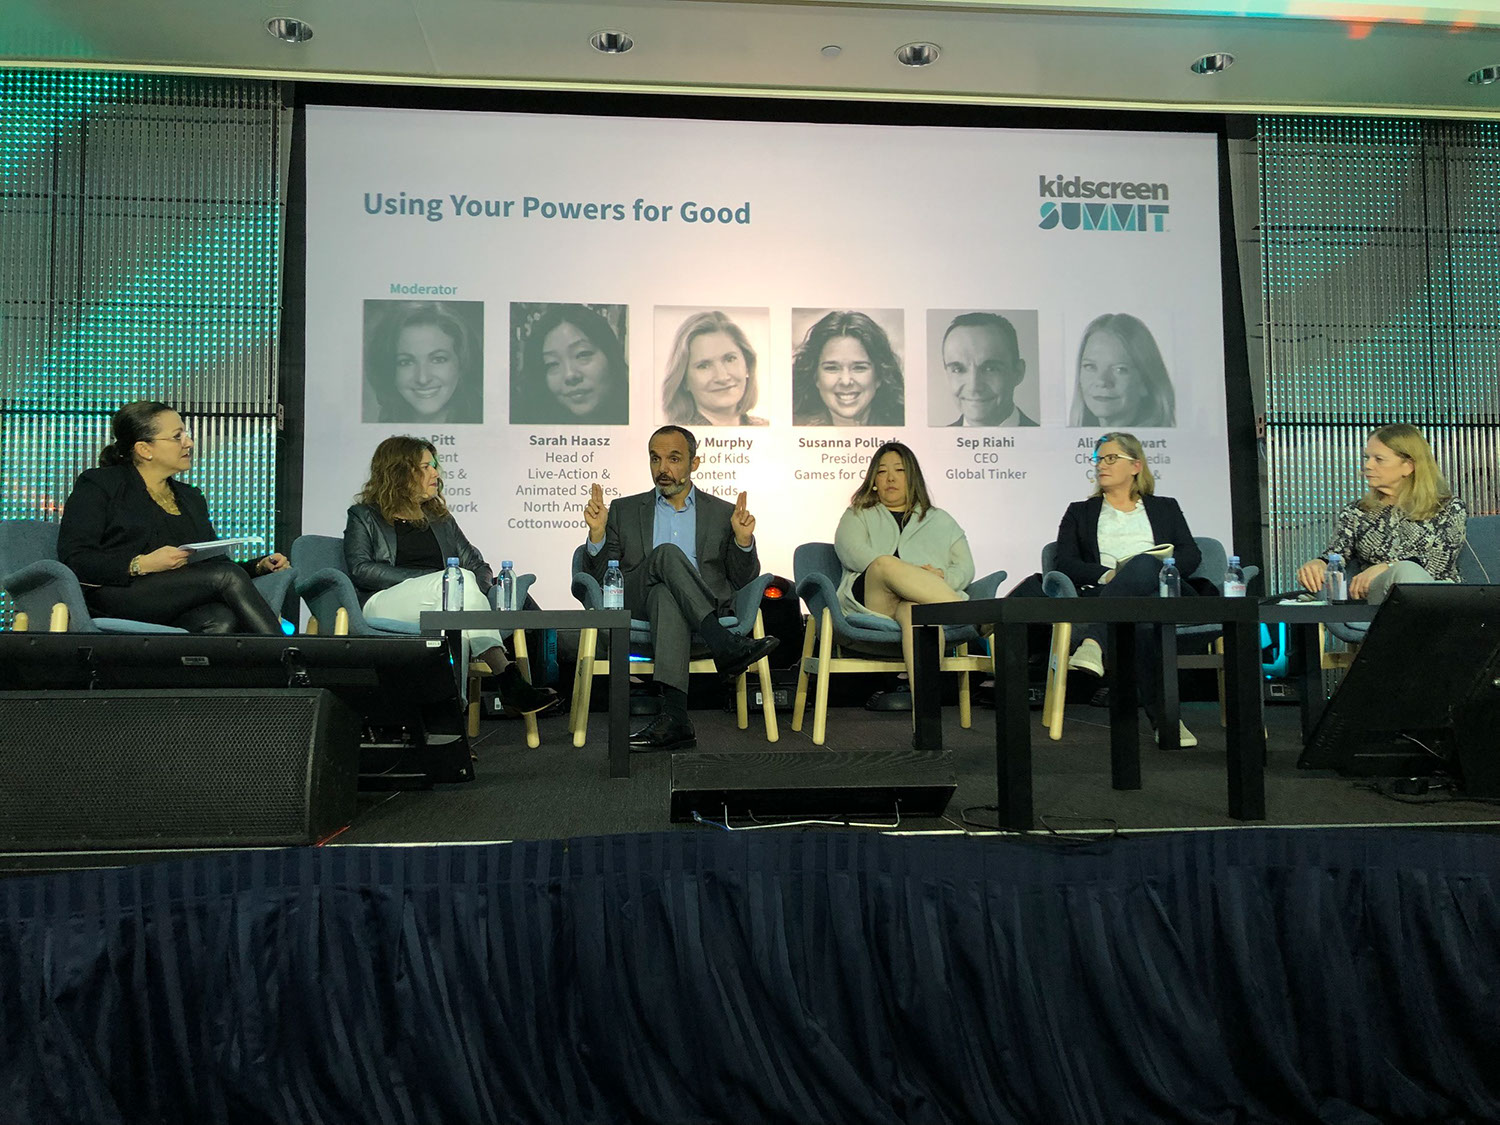 "GLOBAL TINKER'S SEP RIAHI ON THE 2019 KIDSCREEN SUMMIT PANEL ""USING YOUR POWERS FOR GOOD"", ALONGSIDE COMPANIES CARTOON NETWORK, GAMES FOR CHANGE, FEDERATION KIDS AND FAMILY, AND SKY KIDS (MIAMI 2019)"